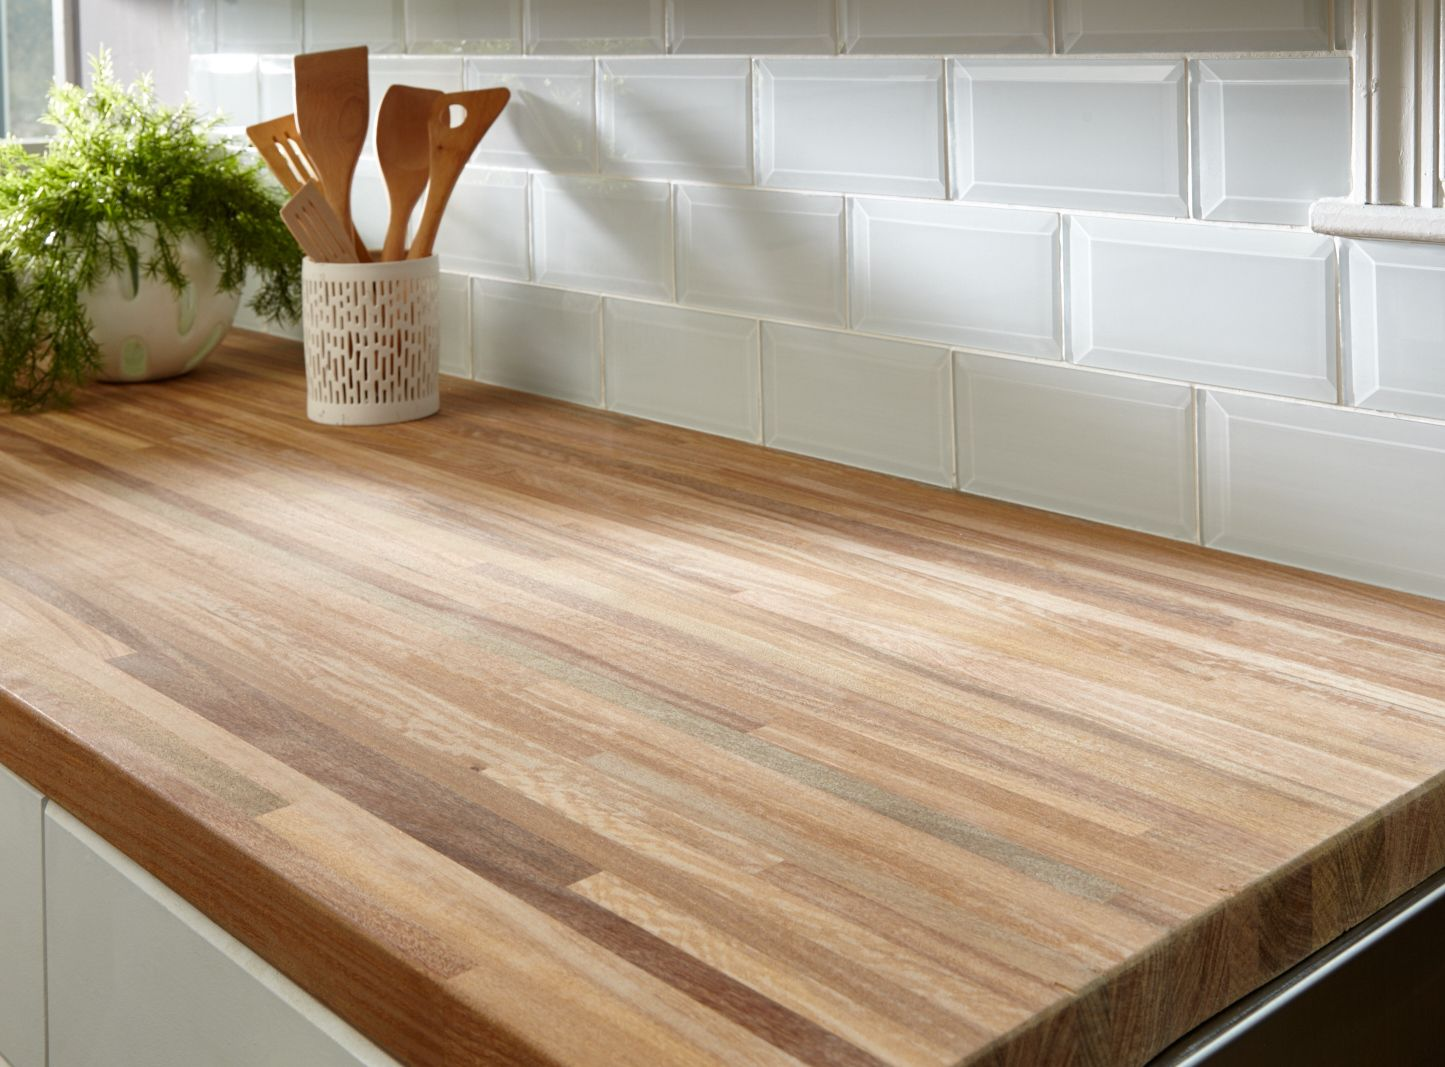 White Beveled Glass Tile And Butcher Block Countertop